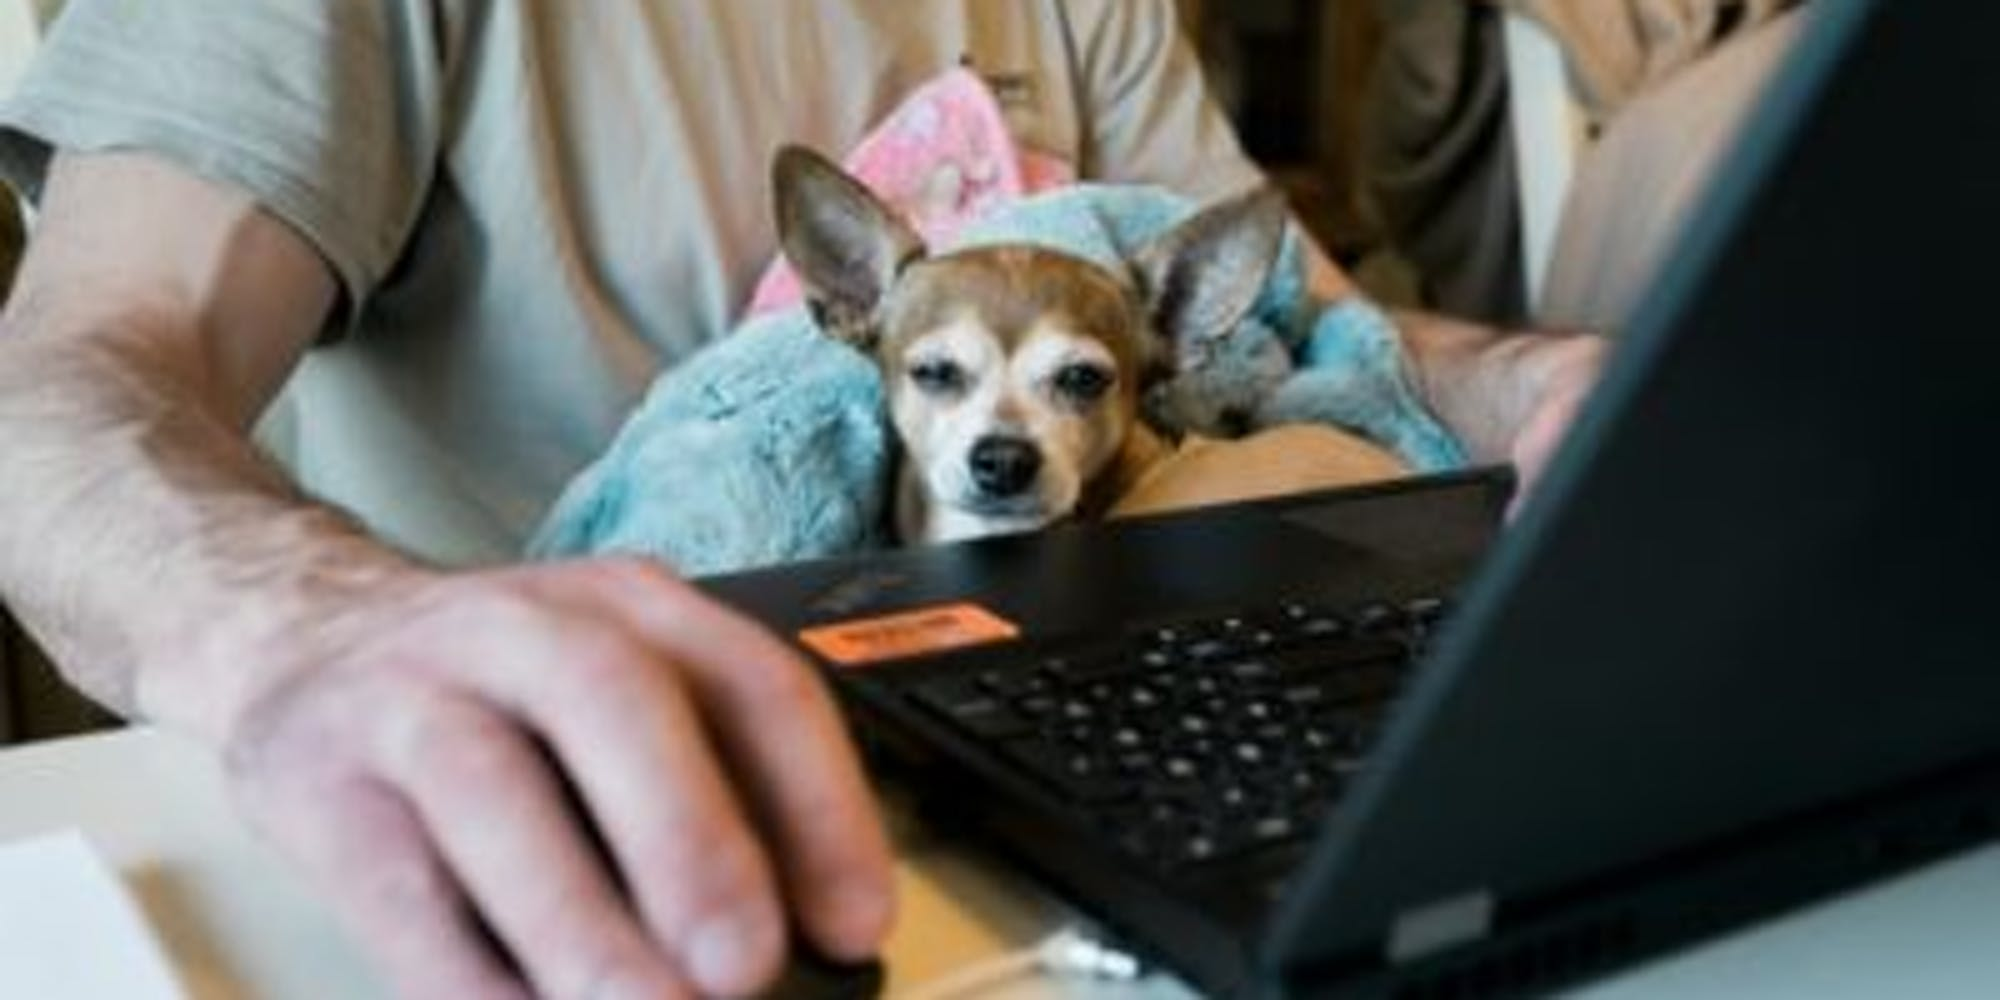 A man using their laptop while his dog sits in his lap